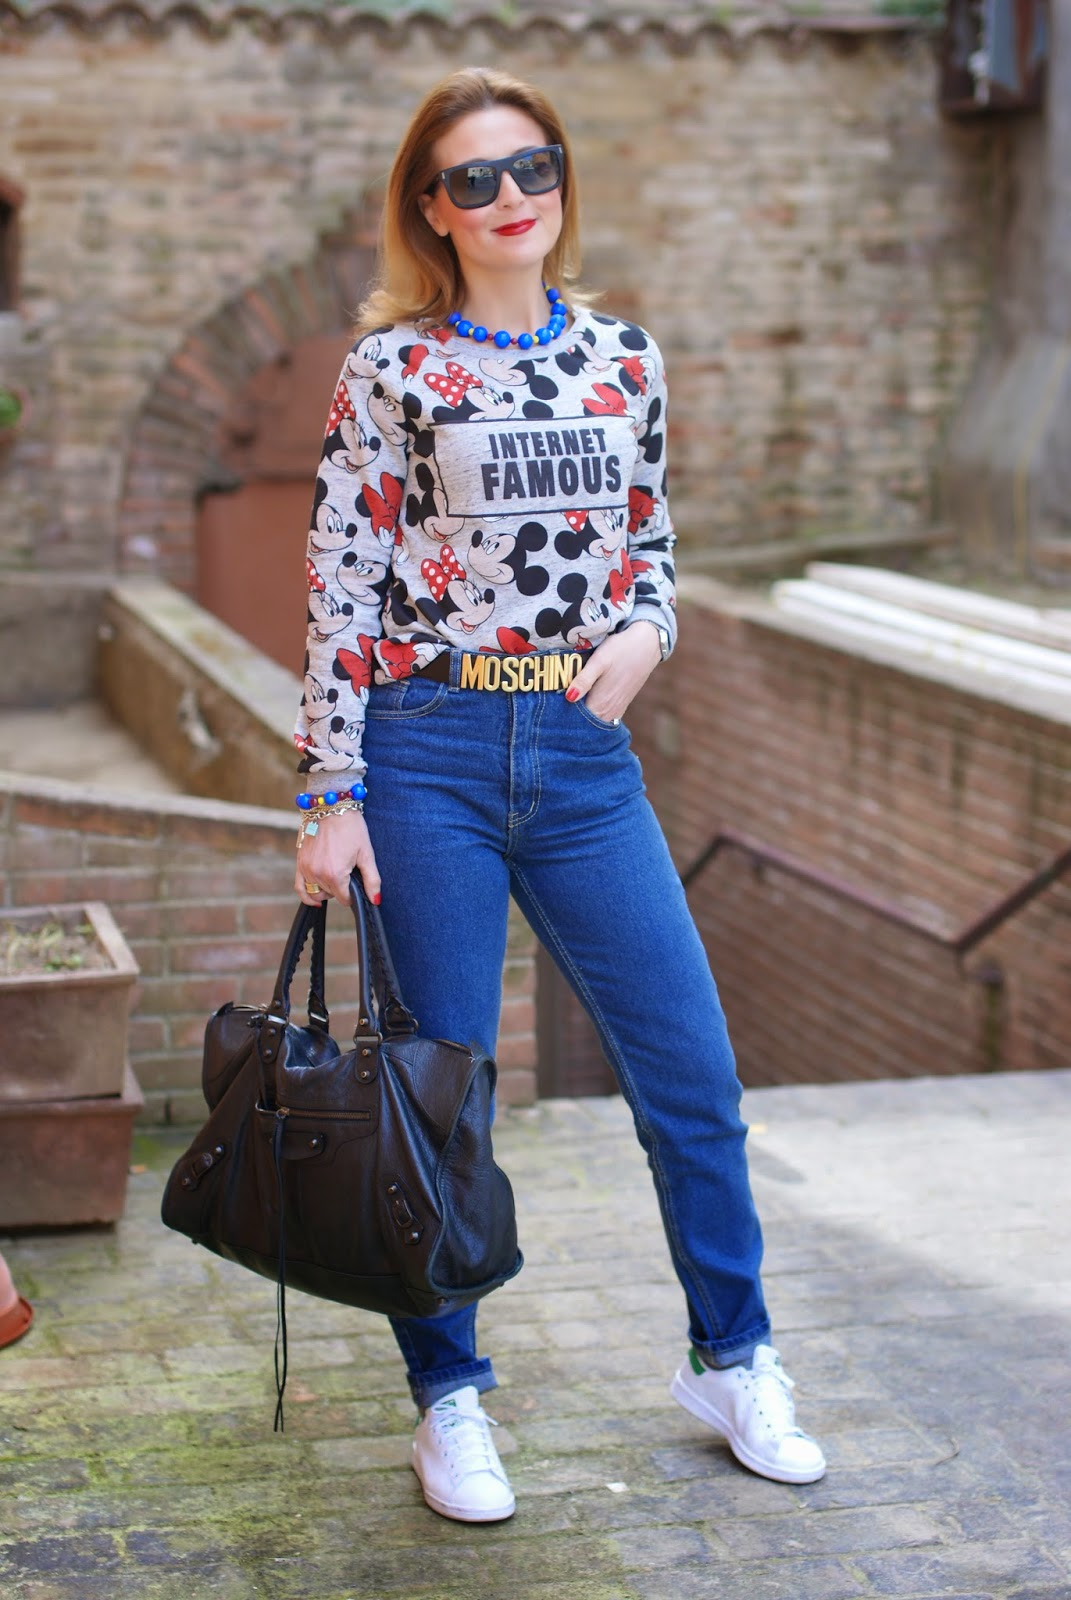 80s inspired look, zaful jeans, casual 80s look, internet famous bershka top, high waisted jeans, balenciaga work bag, mickey mouse top, Fashion and Cookies, fashion blogger